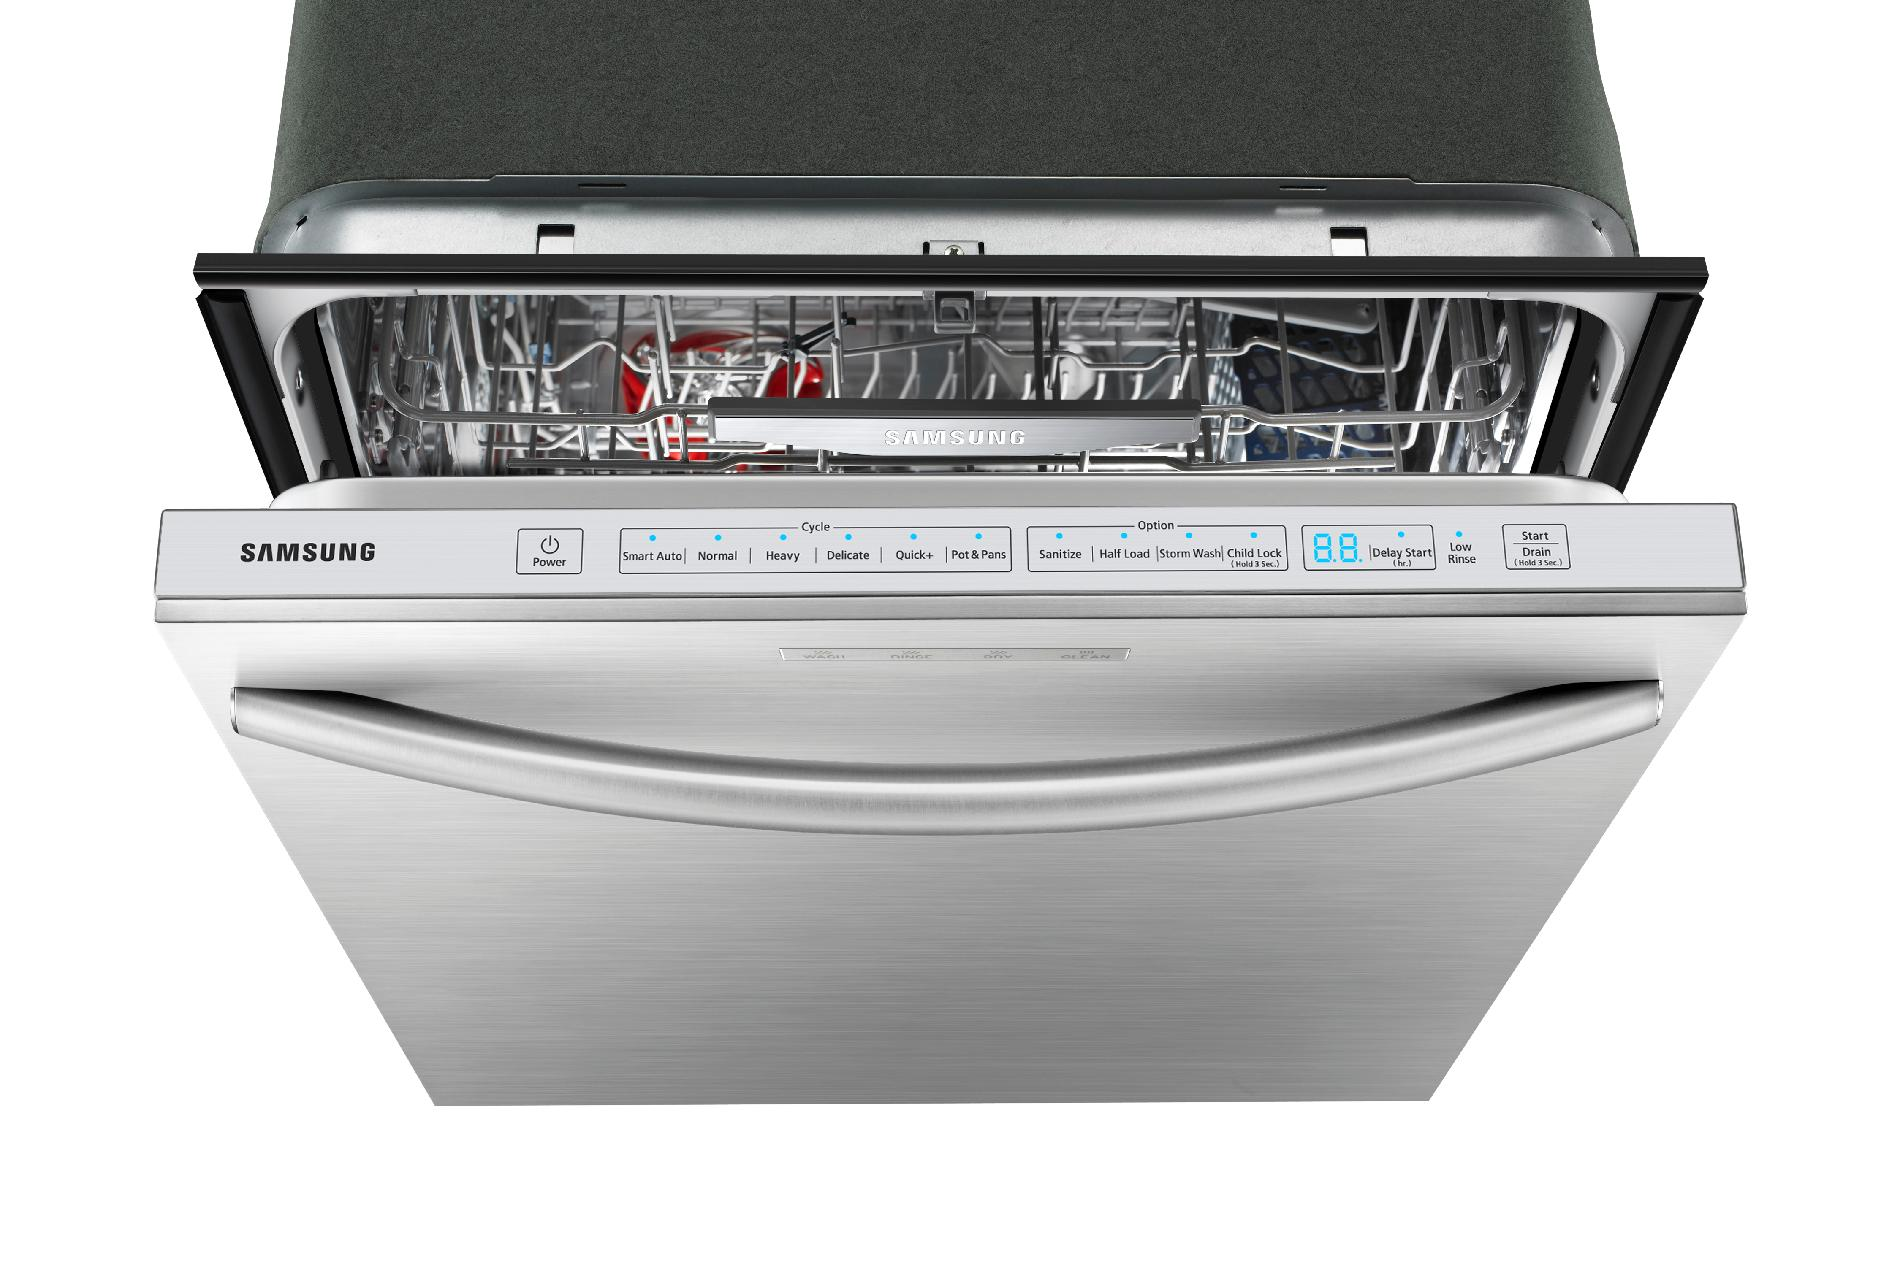 "Samsung 24"" Built-In Dishwasher w/ Stainless Steel Tub - Stainless Steel"